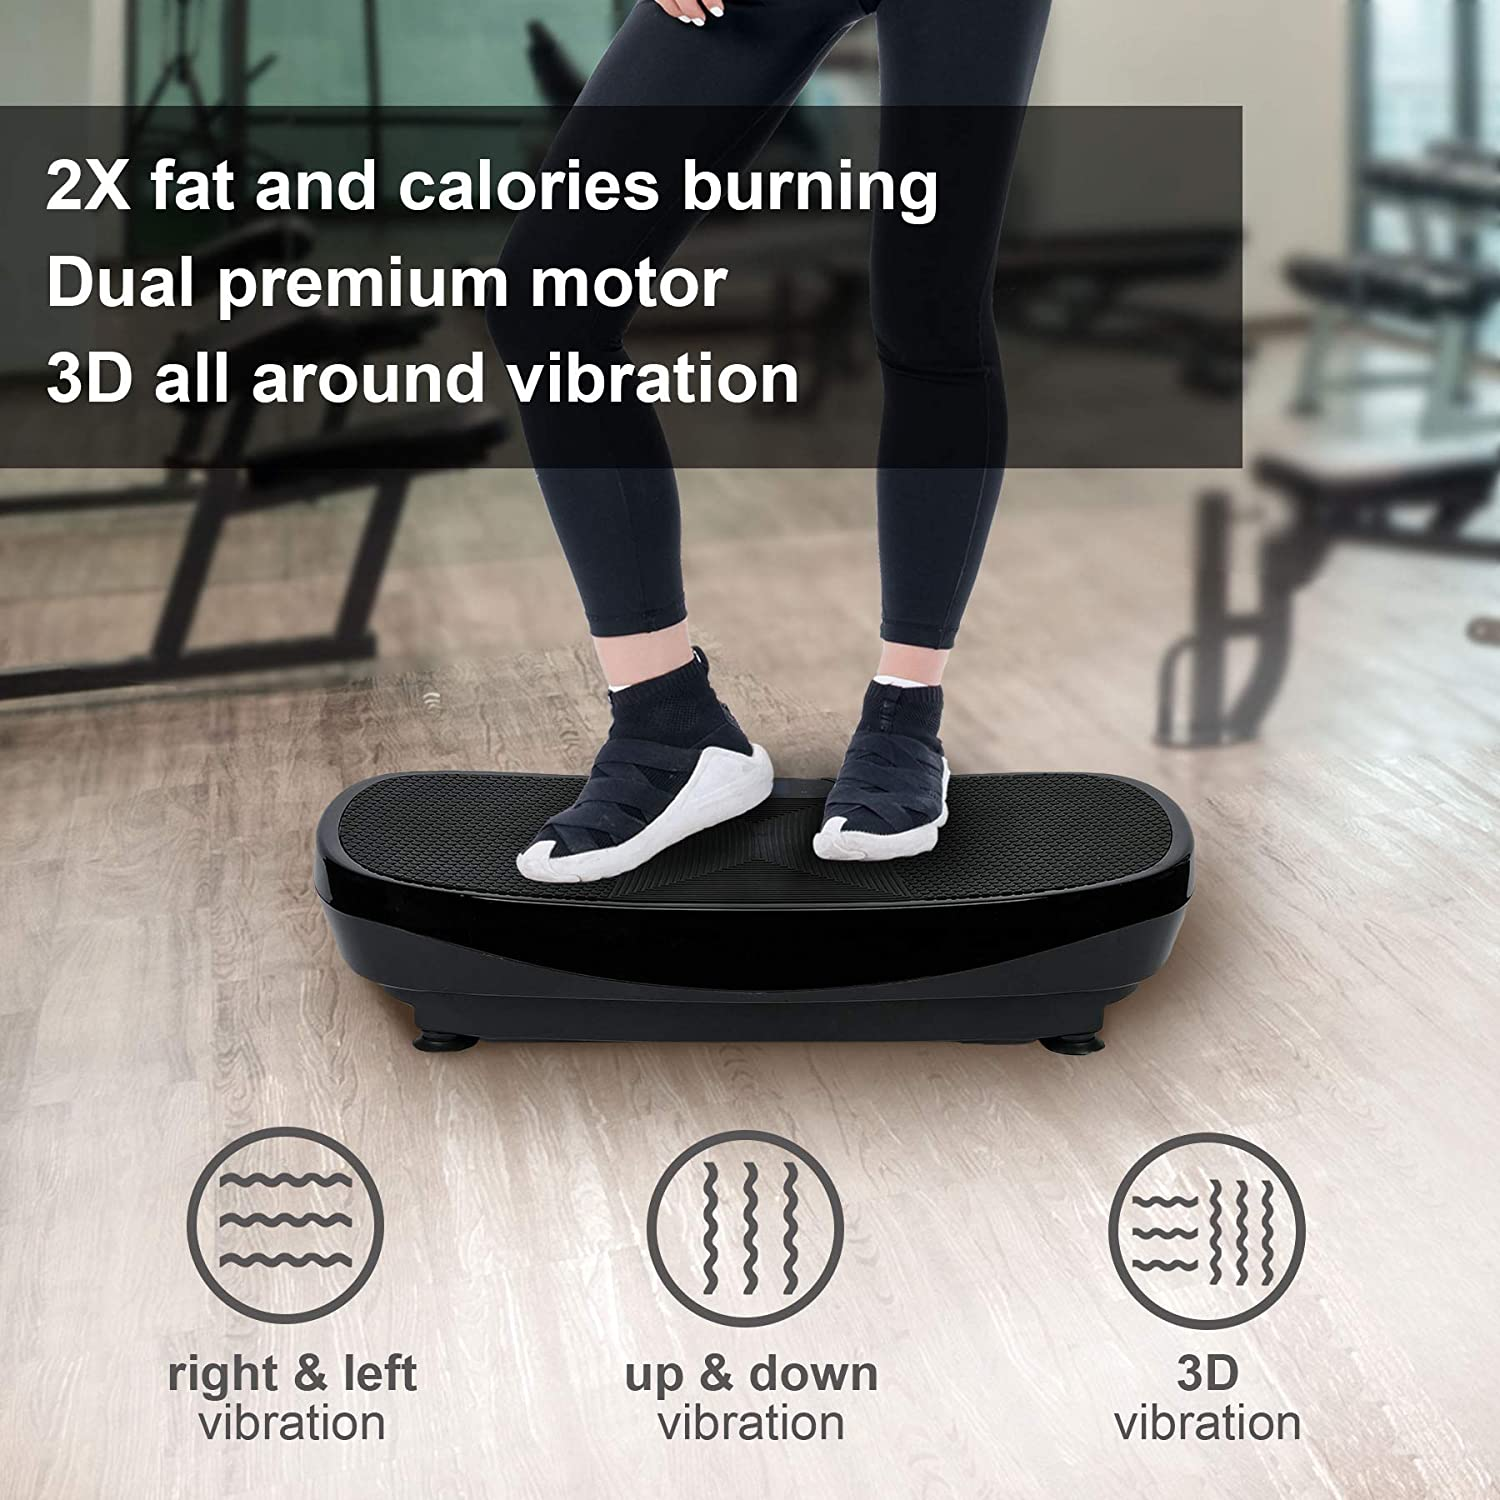 Z ZELUS 3D Fitness Whole Body Vibration Platform Machine – 400W Dual Motors Vibration Plate Crazy Fit Massage Exercise Machine with Remote Control and Resistance Bands